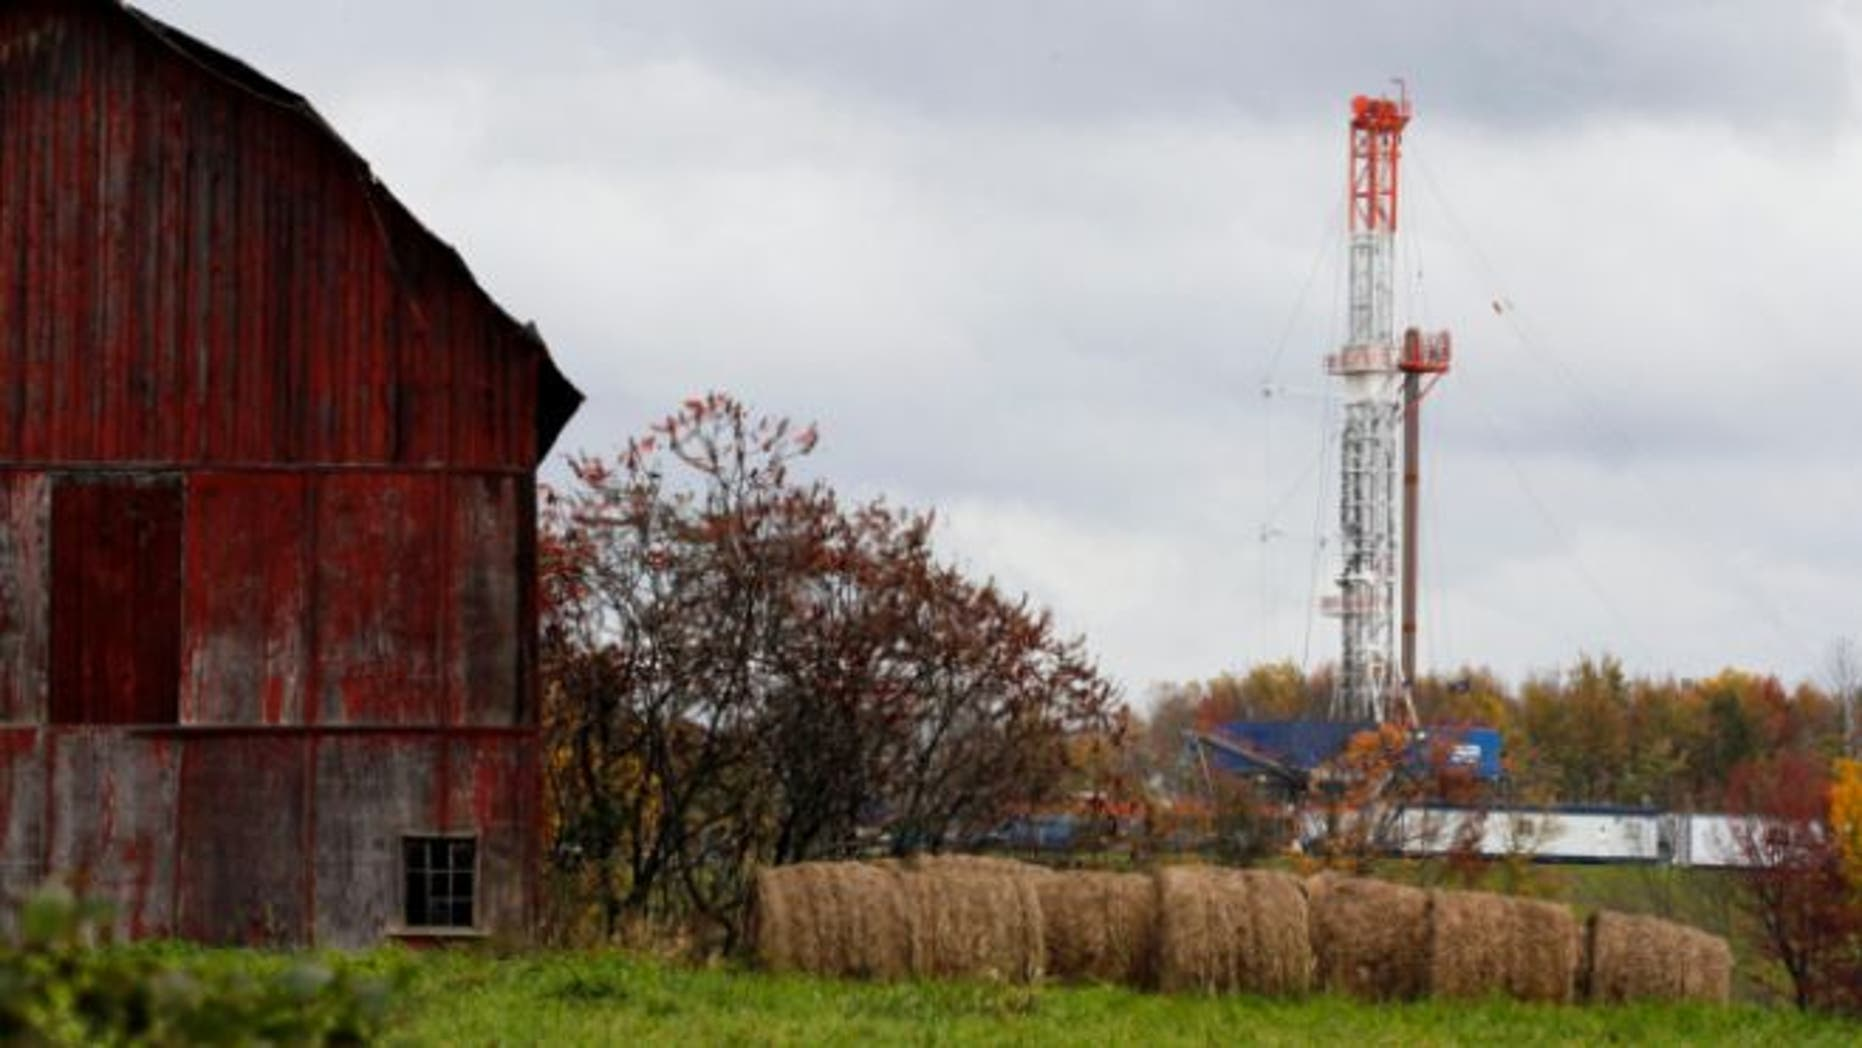 Oct. 14, 2011: A drilling rig is set up near a barn in Springville, Pa., to tap gas from the giant Marcellus Shale gas field.